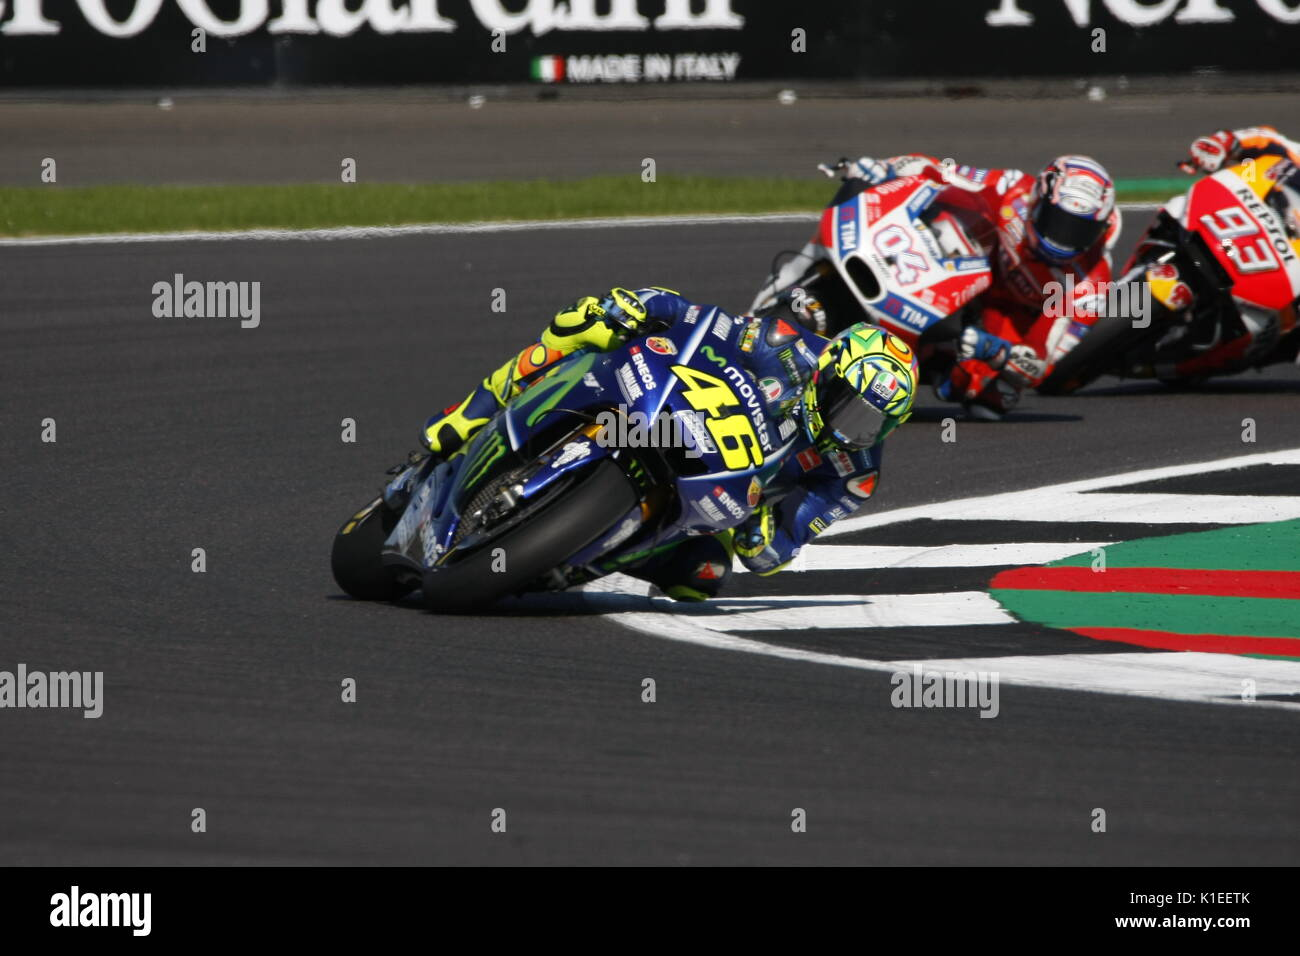 Silverstone, UK. 27th Aug, 2017.  Rossi leads winner Dovizioso (Ducati) and Marc Marquez during the OCTO British MotoGP Credit: Motofoto/Alamy Live News - Stock Image